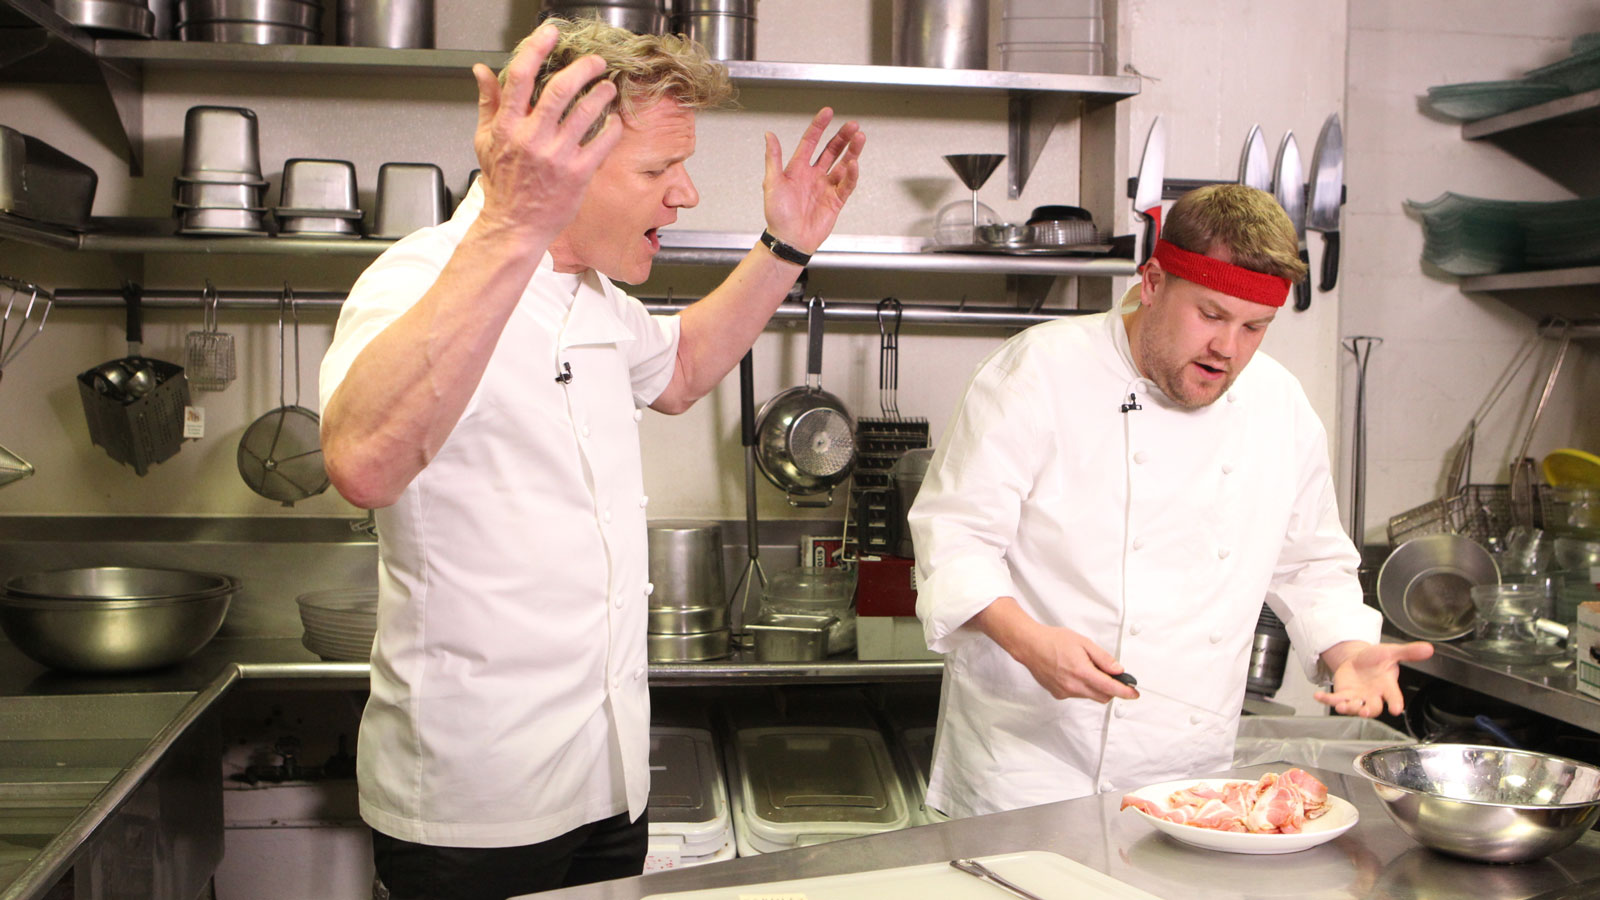 james-corden-gordon-ramsay-sketch-FT-BLOG0817.jpg